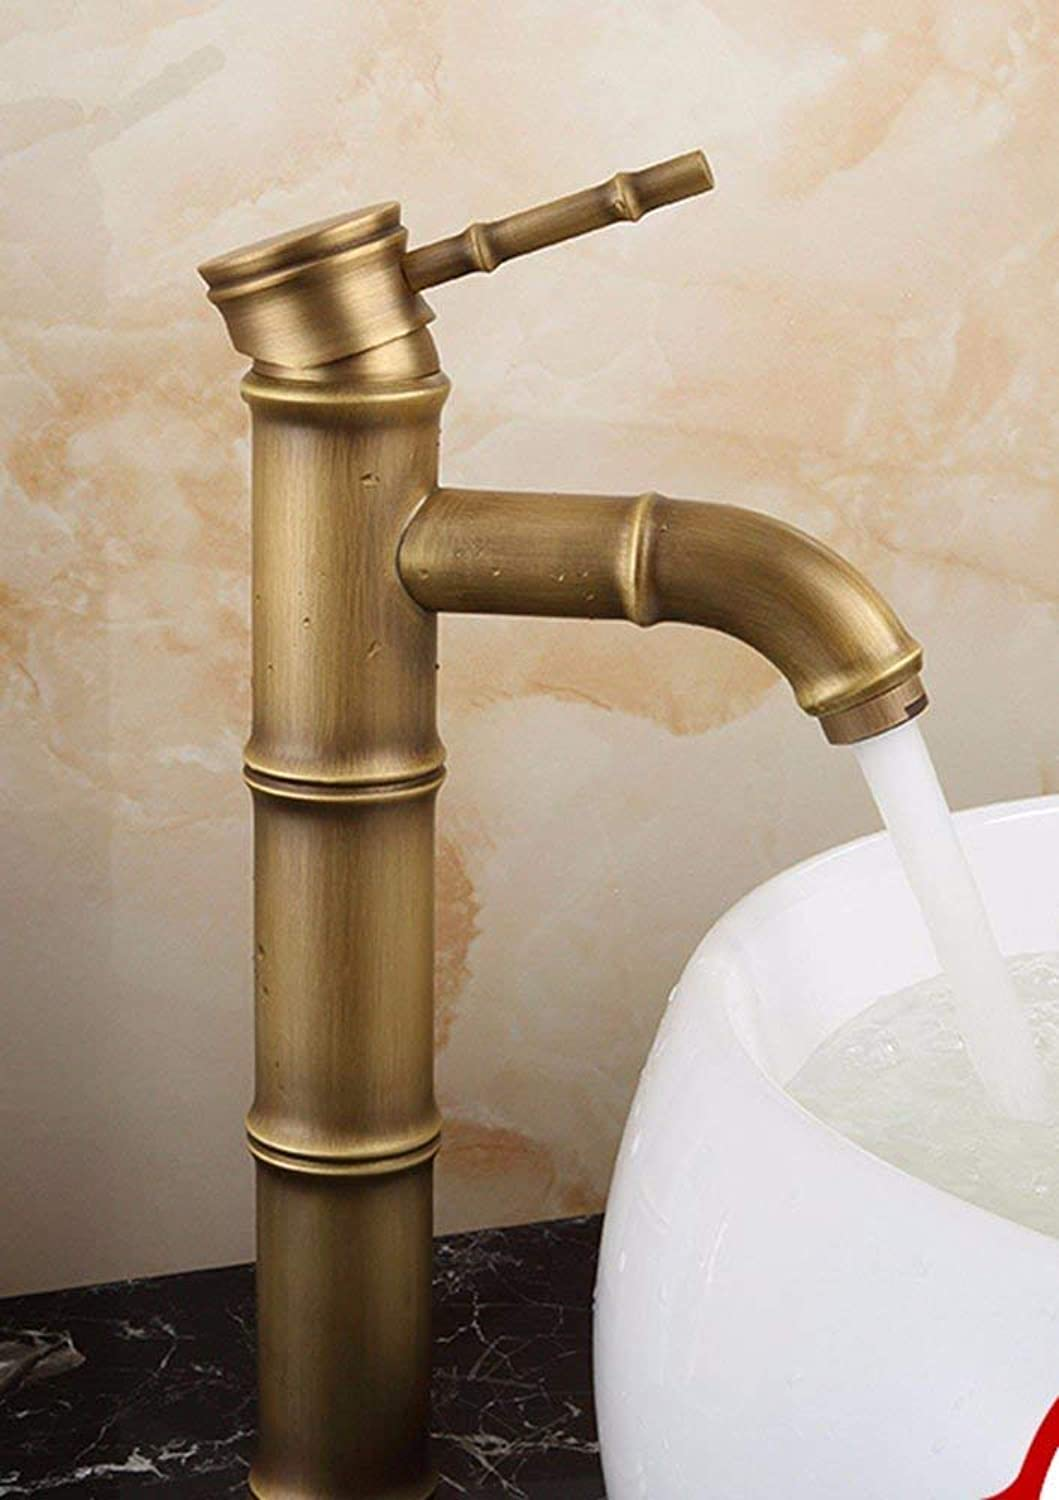 Oudan European style retro style copper Hot and cold surfacePots Sink faucet